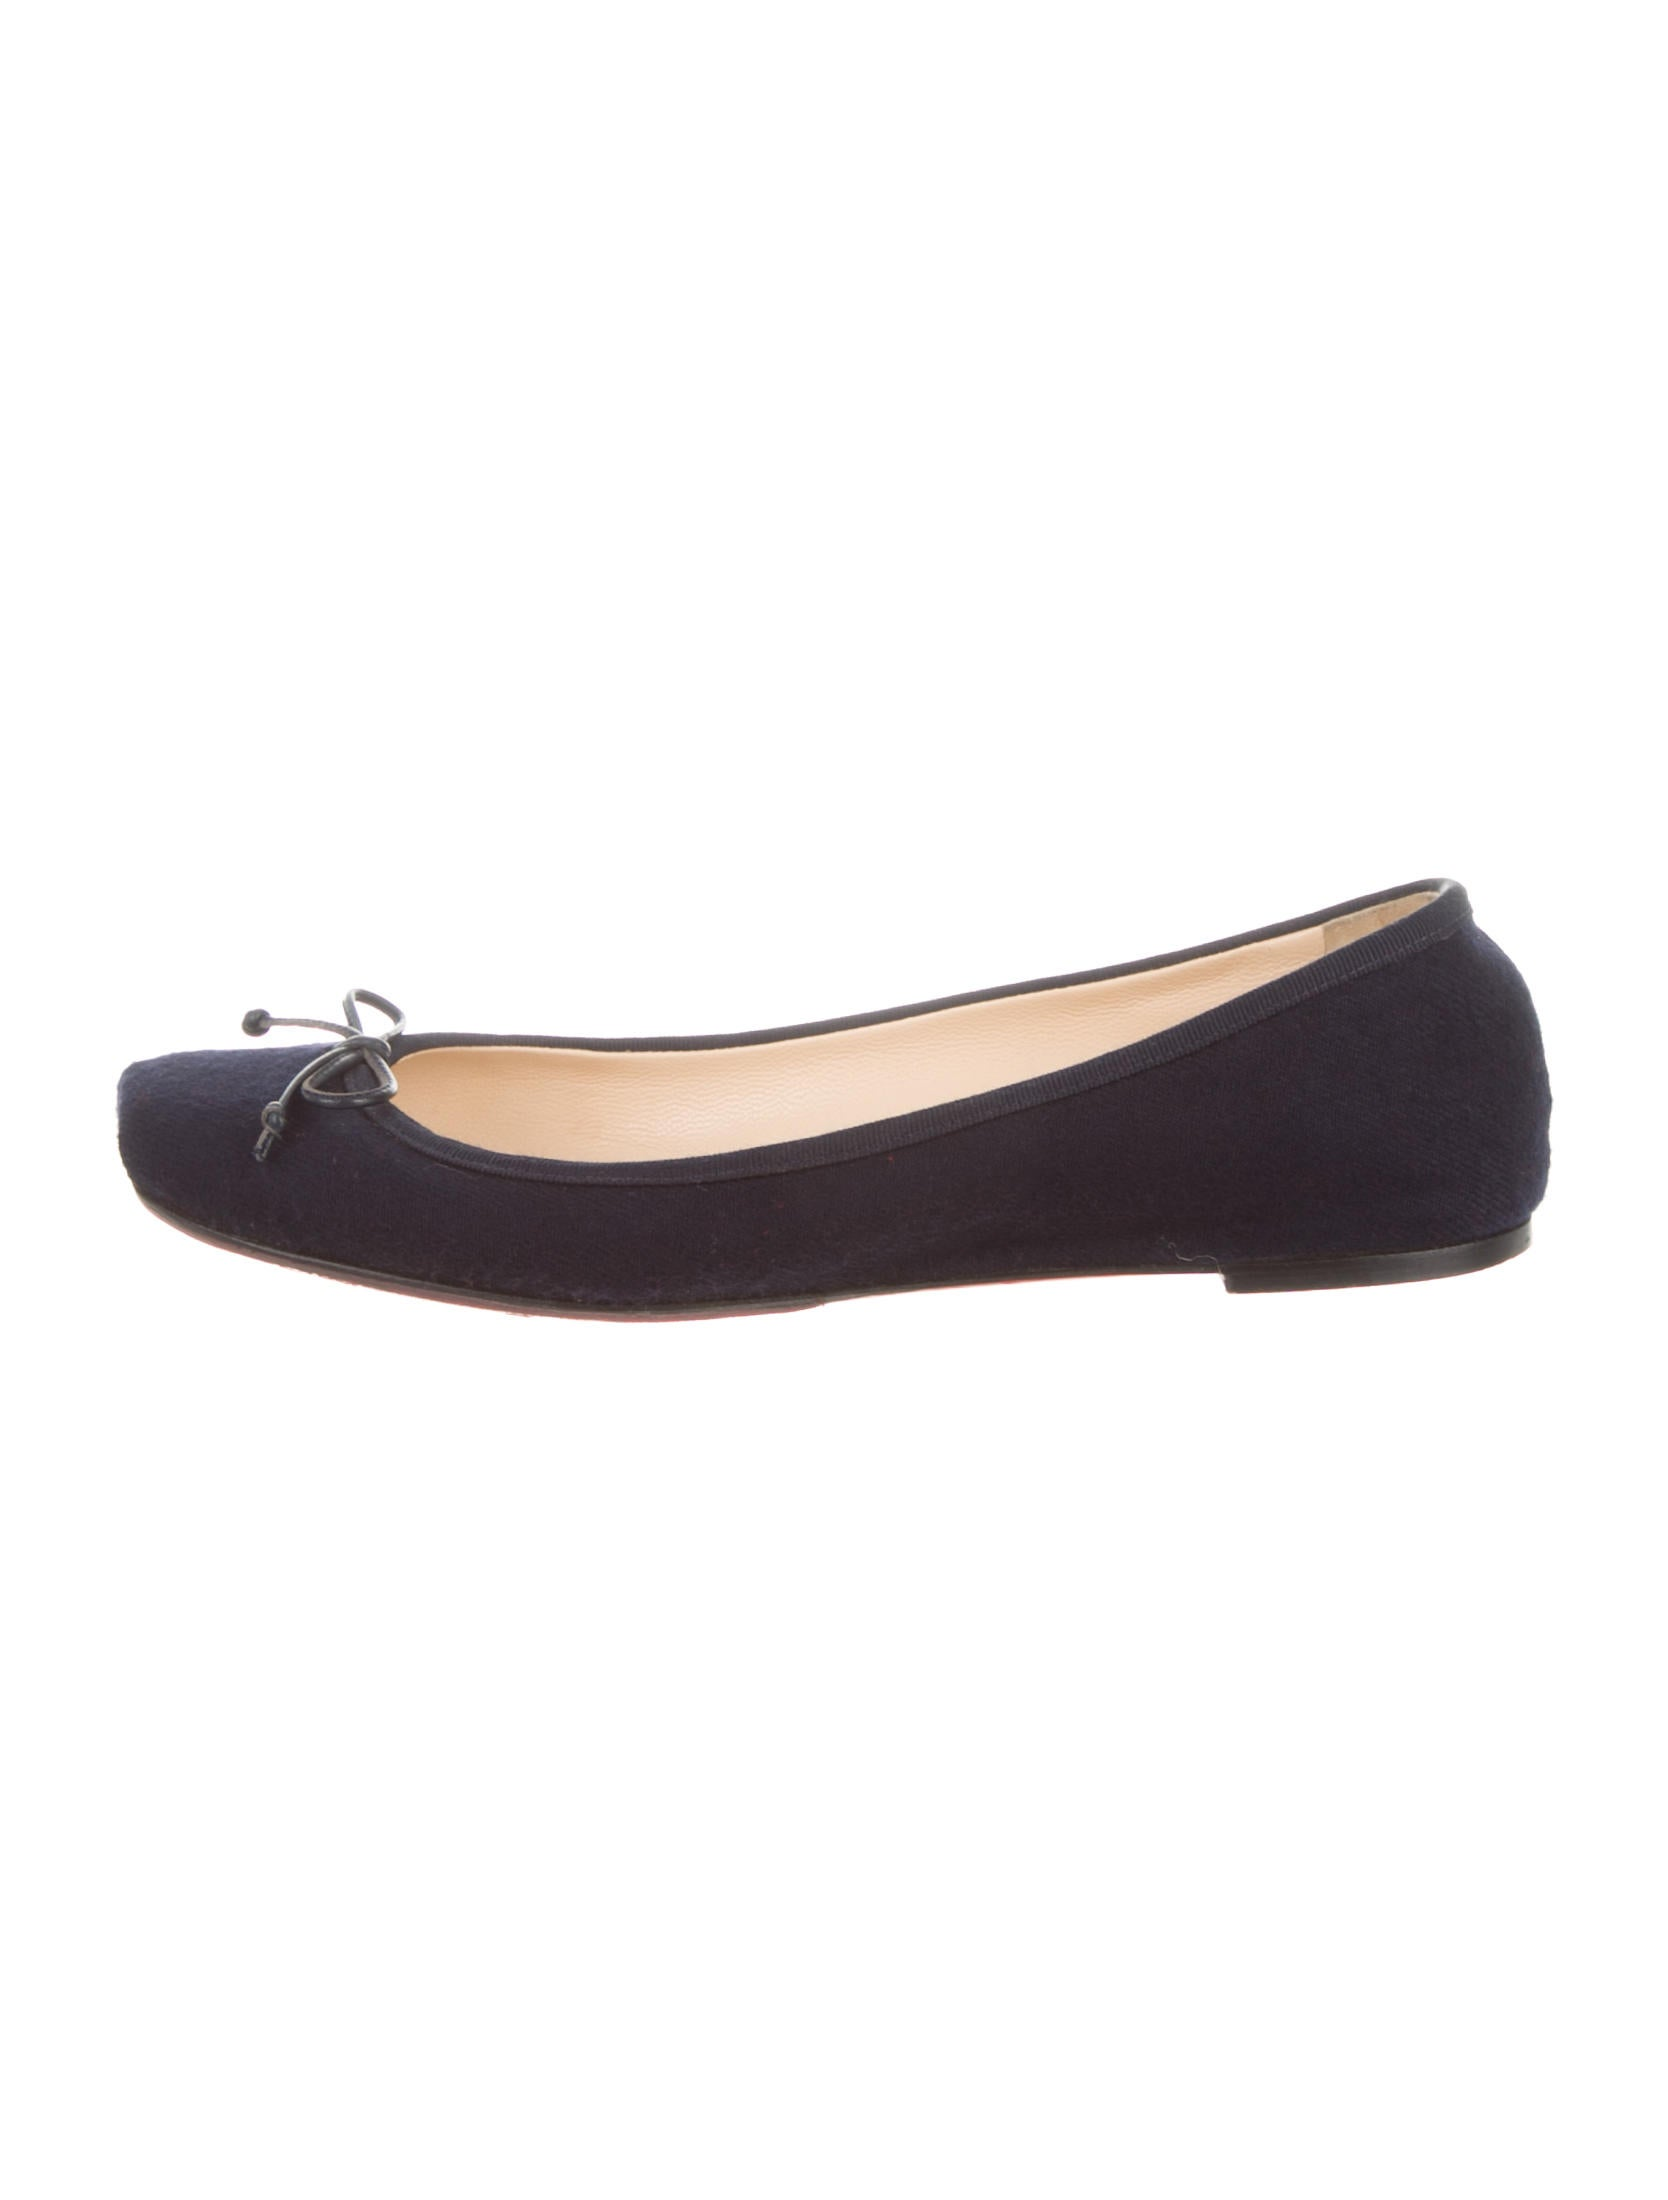 Christian Louboutin Square-Toe Wool Flats - Shoes - CHT39129   The ...